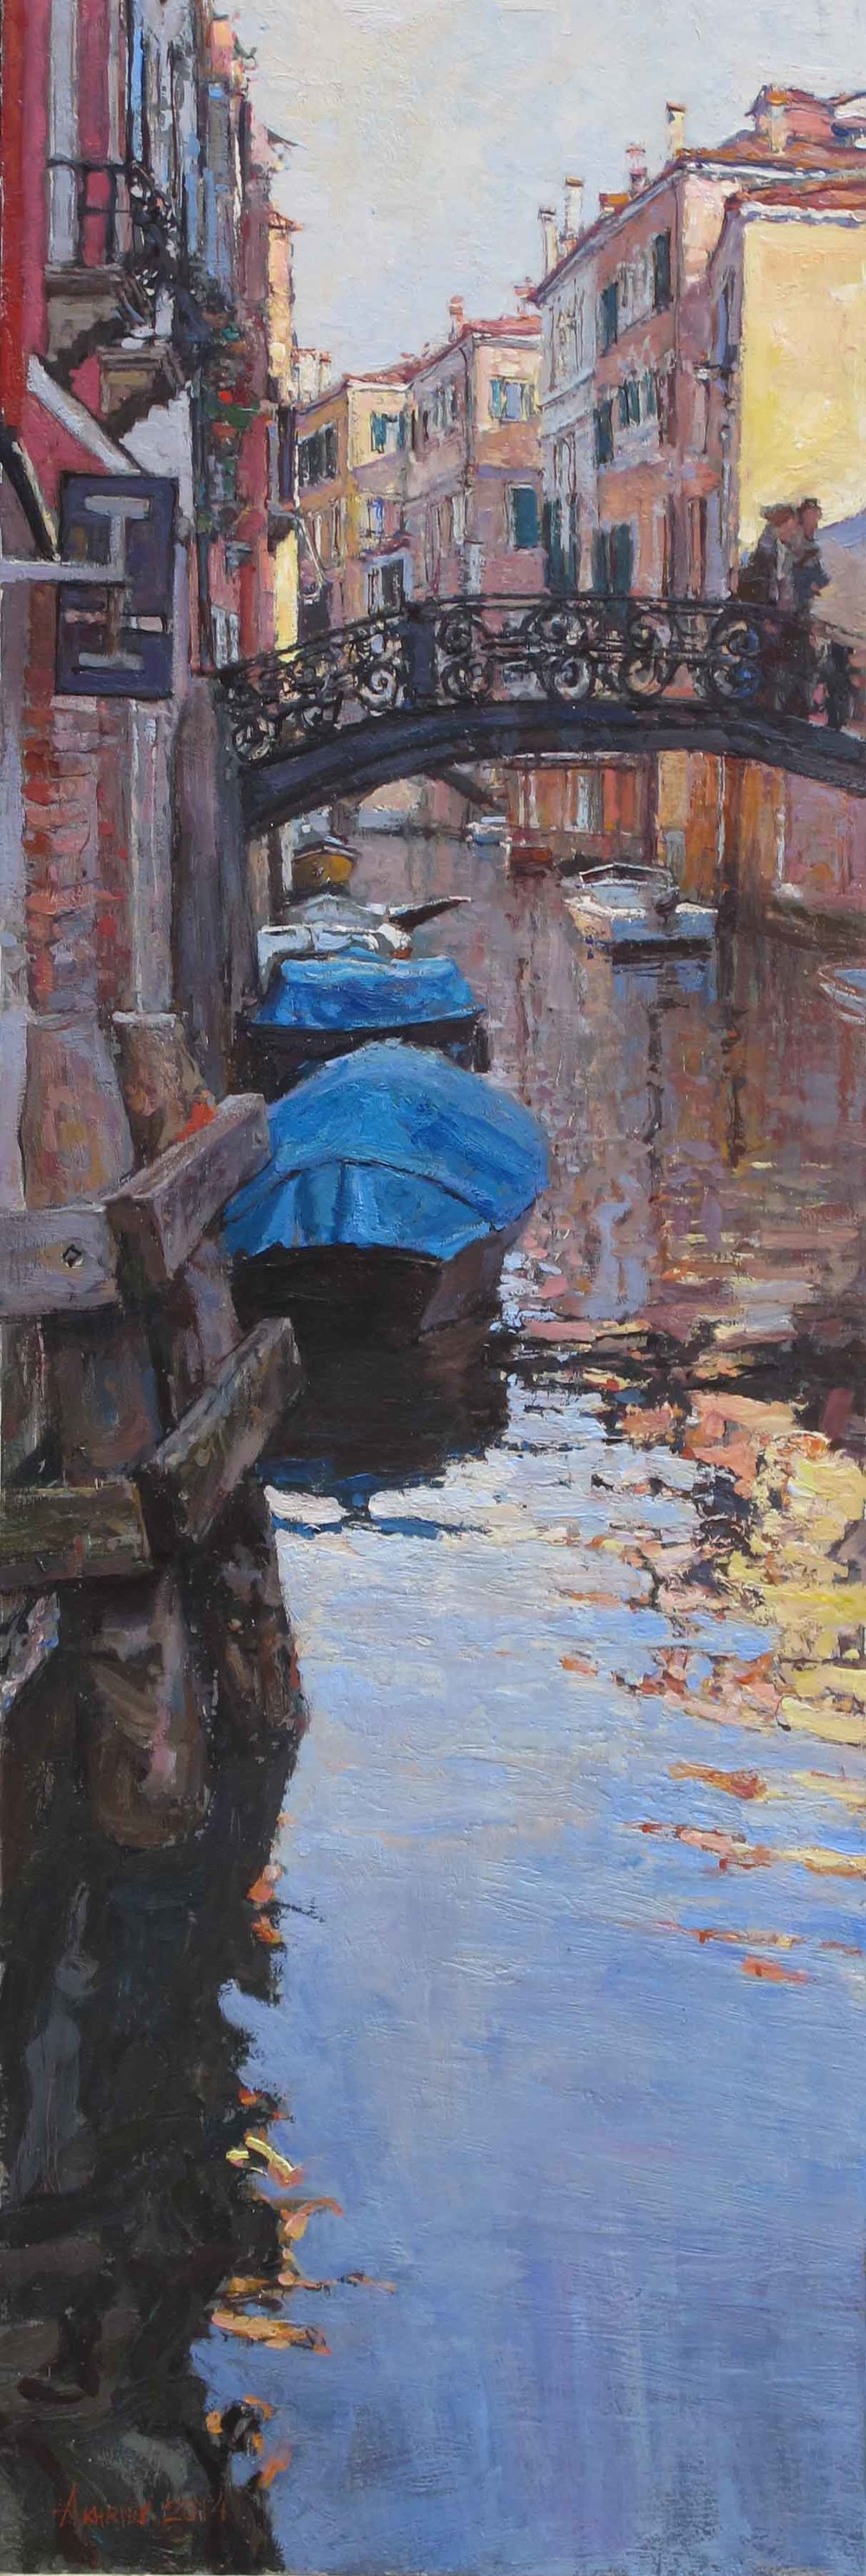 """Fragments of Venice,"" Daud Akhriev, Oil on Board, 23.5 x 7.8 inches, at Beverly McNeil Gallery, Birmingham."